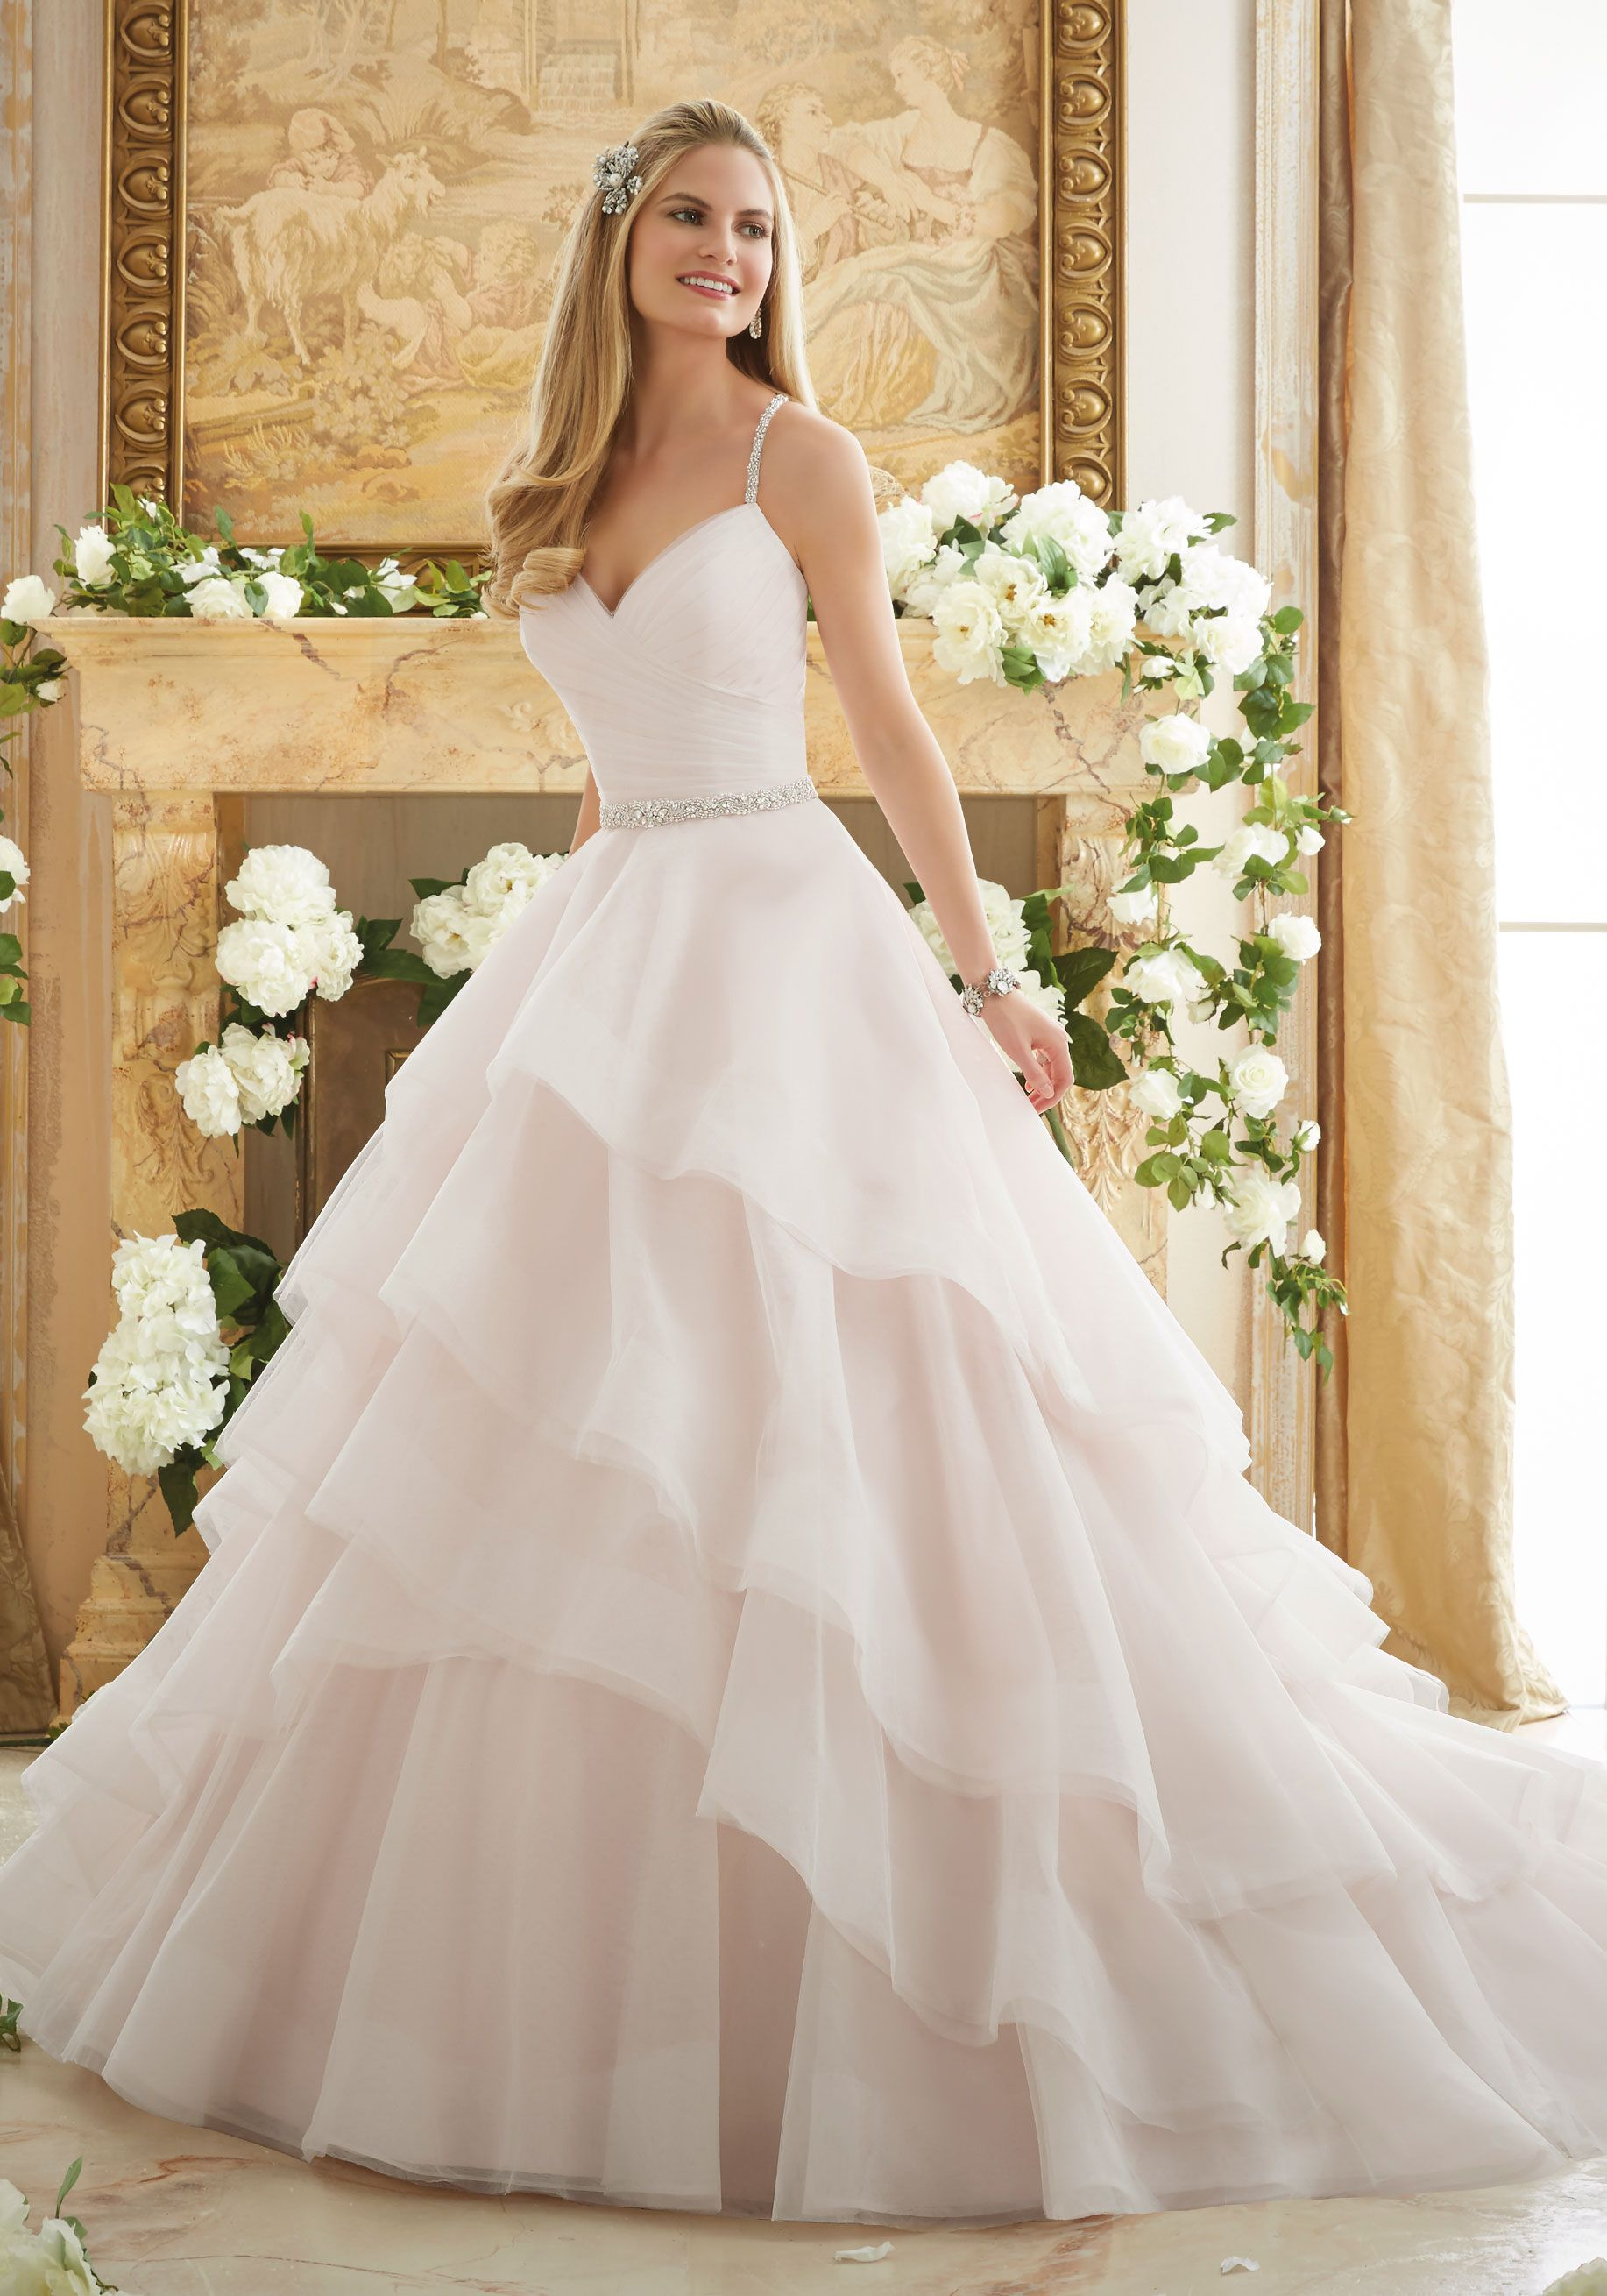 Crystal Beaded Straps on a Billowy Tulle Ball Gown Wedding Dress